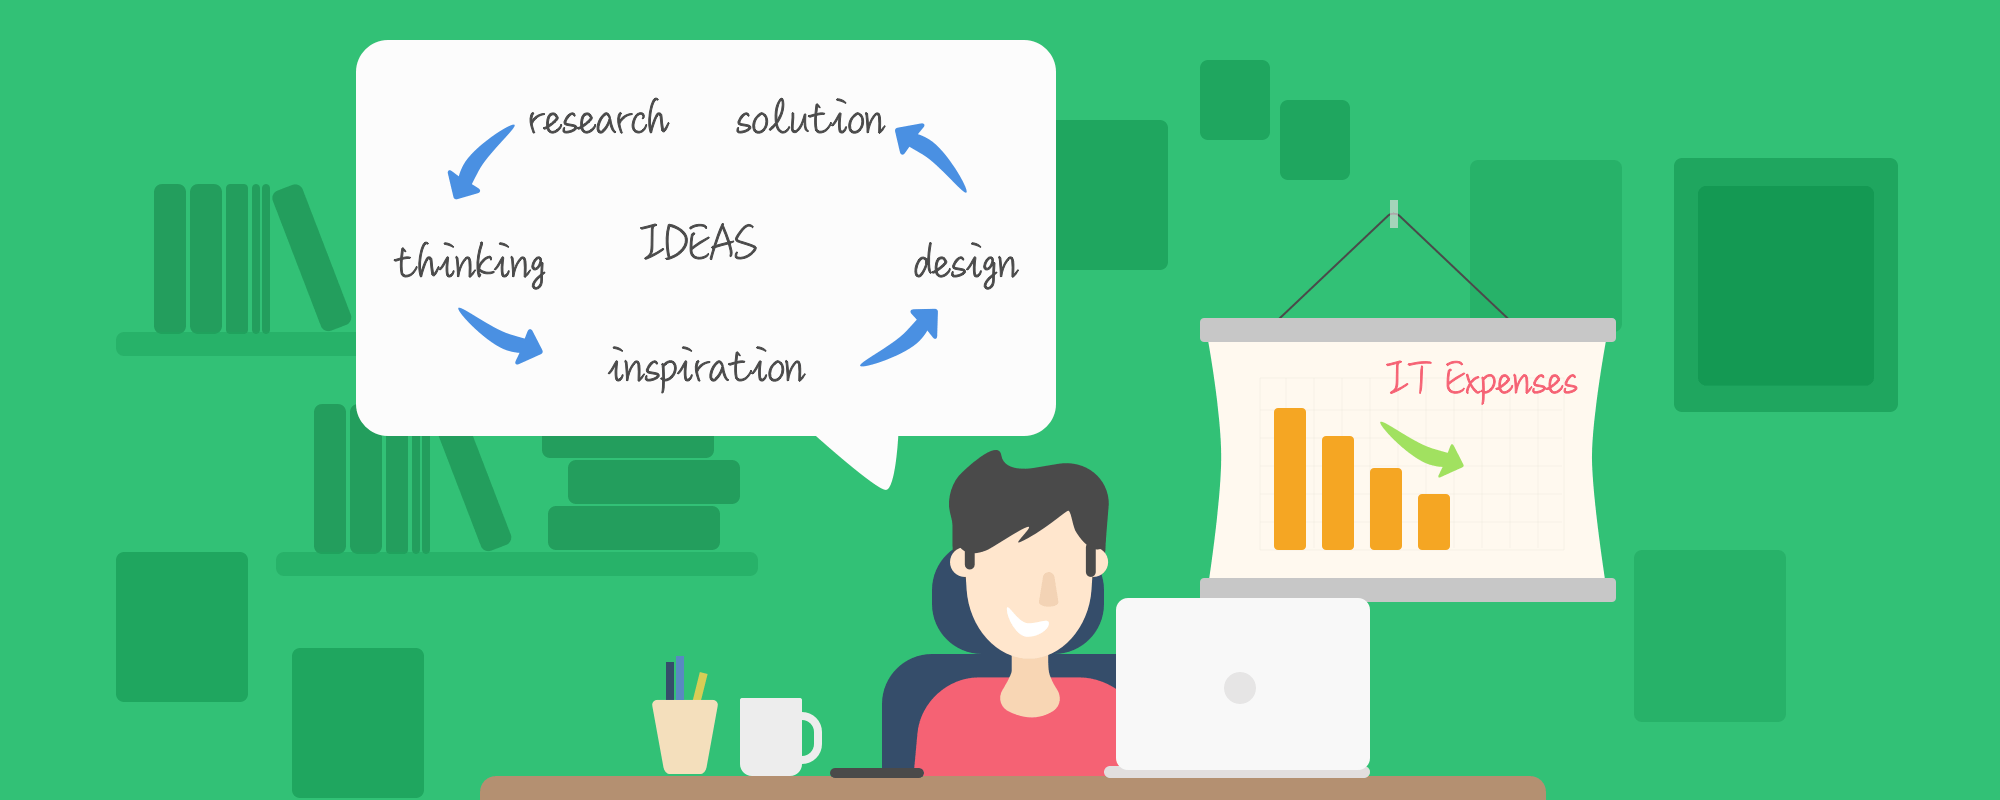 How Design Thinking can cut your IT expenses by a whopping 40%!